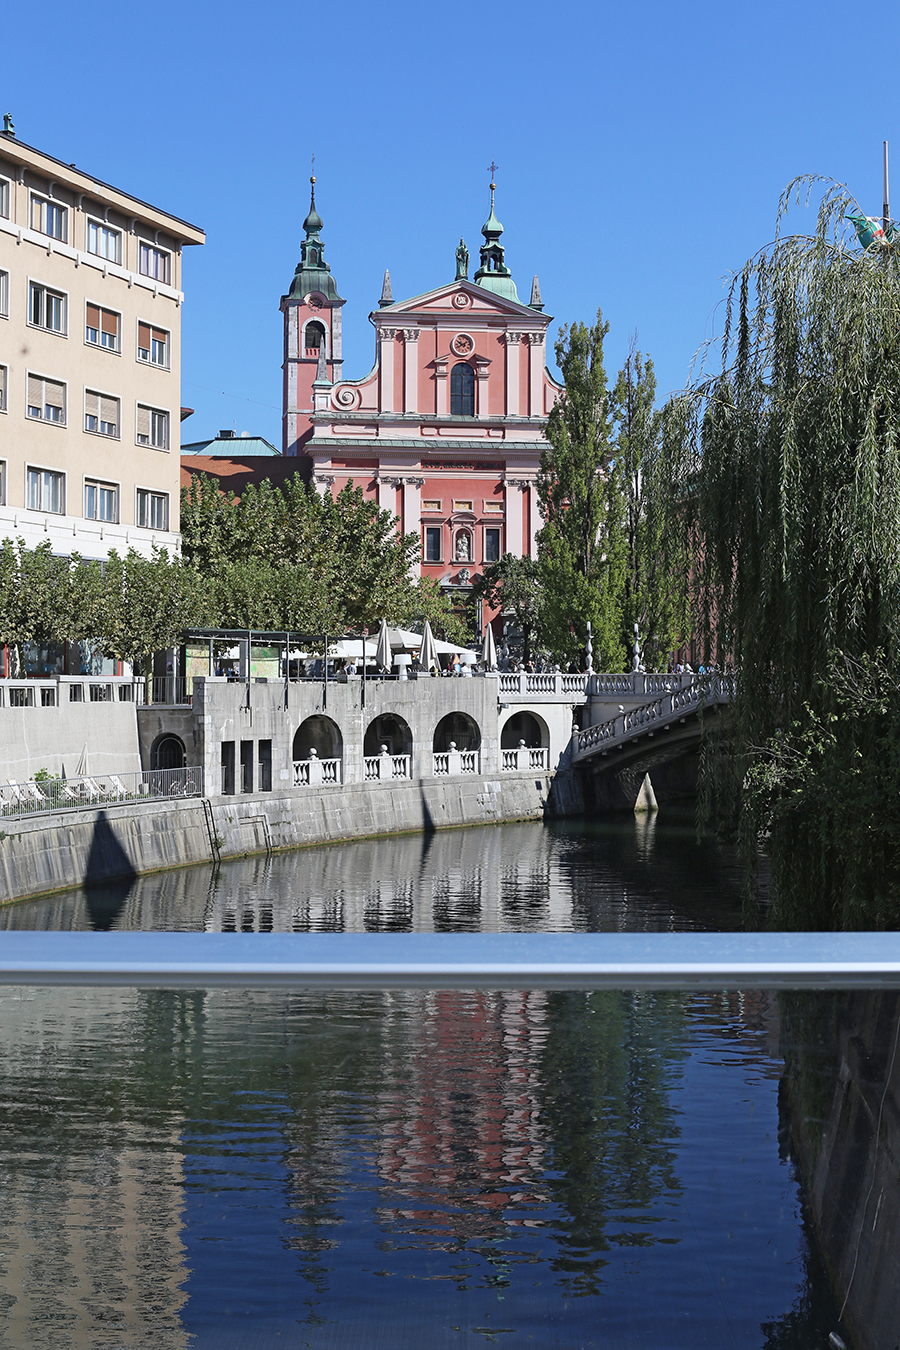 20 Days, 20 Cities, 6 Countries - Part 2: Ljubljana & Maribor, Slovenia